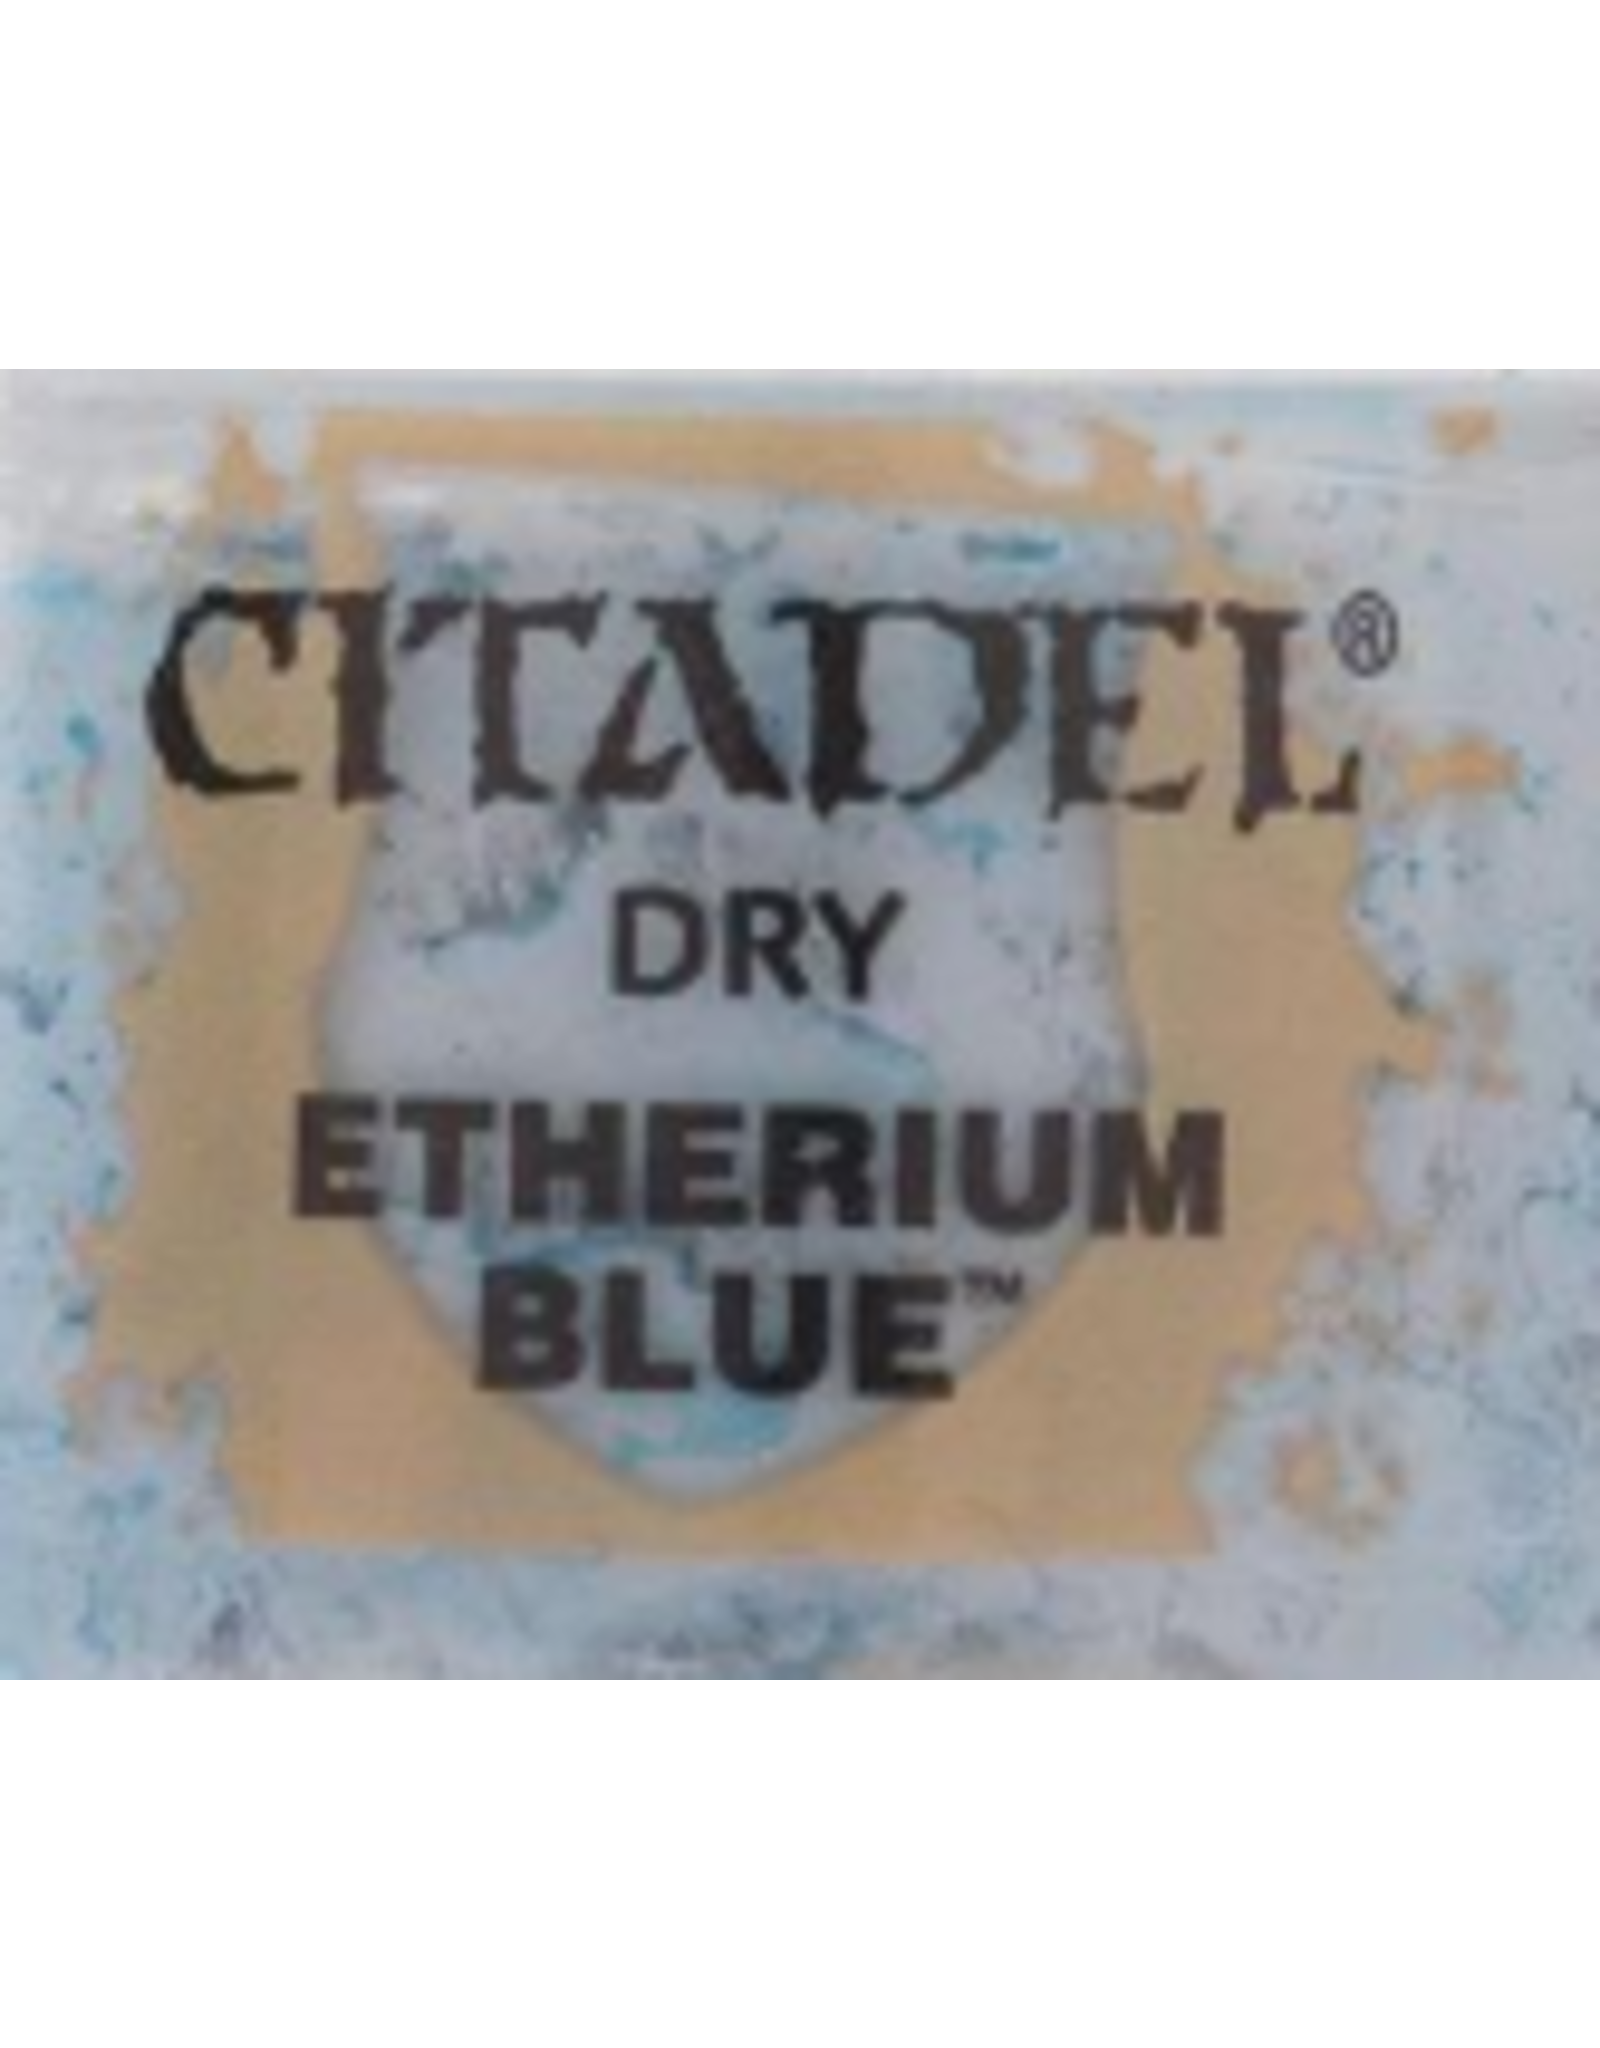 Games Workshop Citadel Dry Etherium Blue